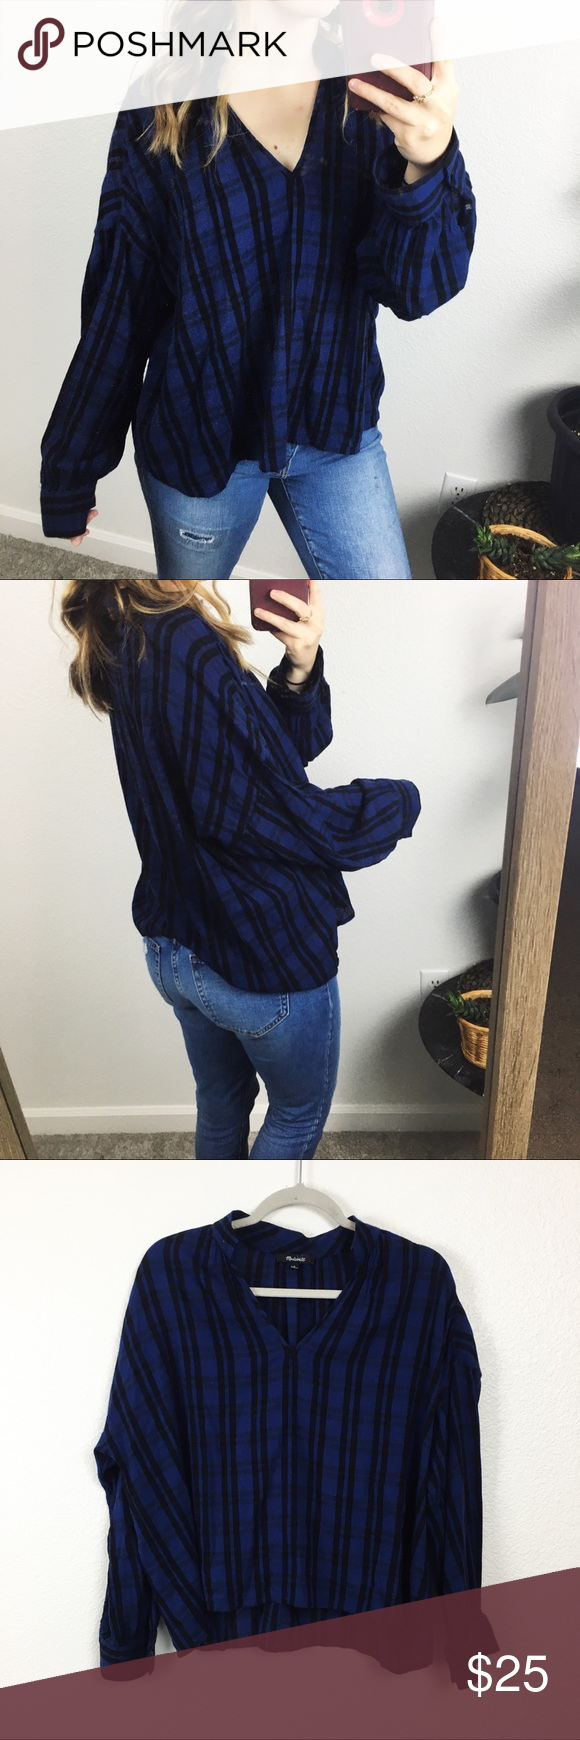 Madewell v neck blouse - in great pre owned condition, shows some small signs of wear on the sleeve as shown in last pic / I'm sure could be washed out  - offers are always welcome 0429E Madewell Tops Blouses